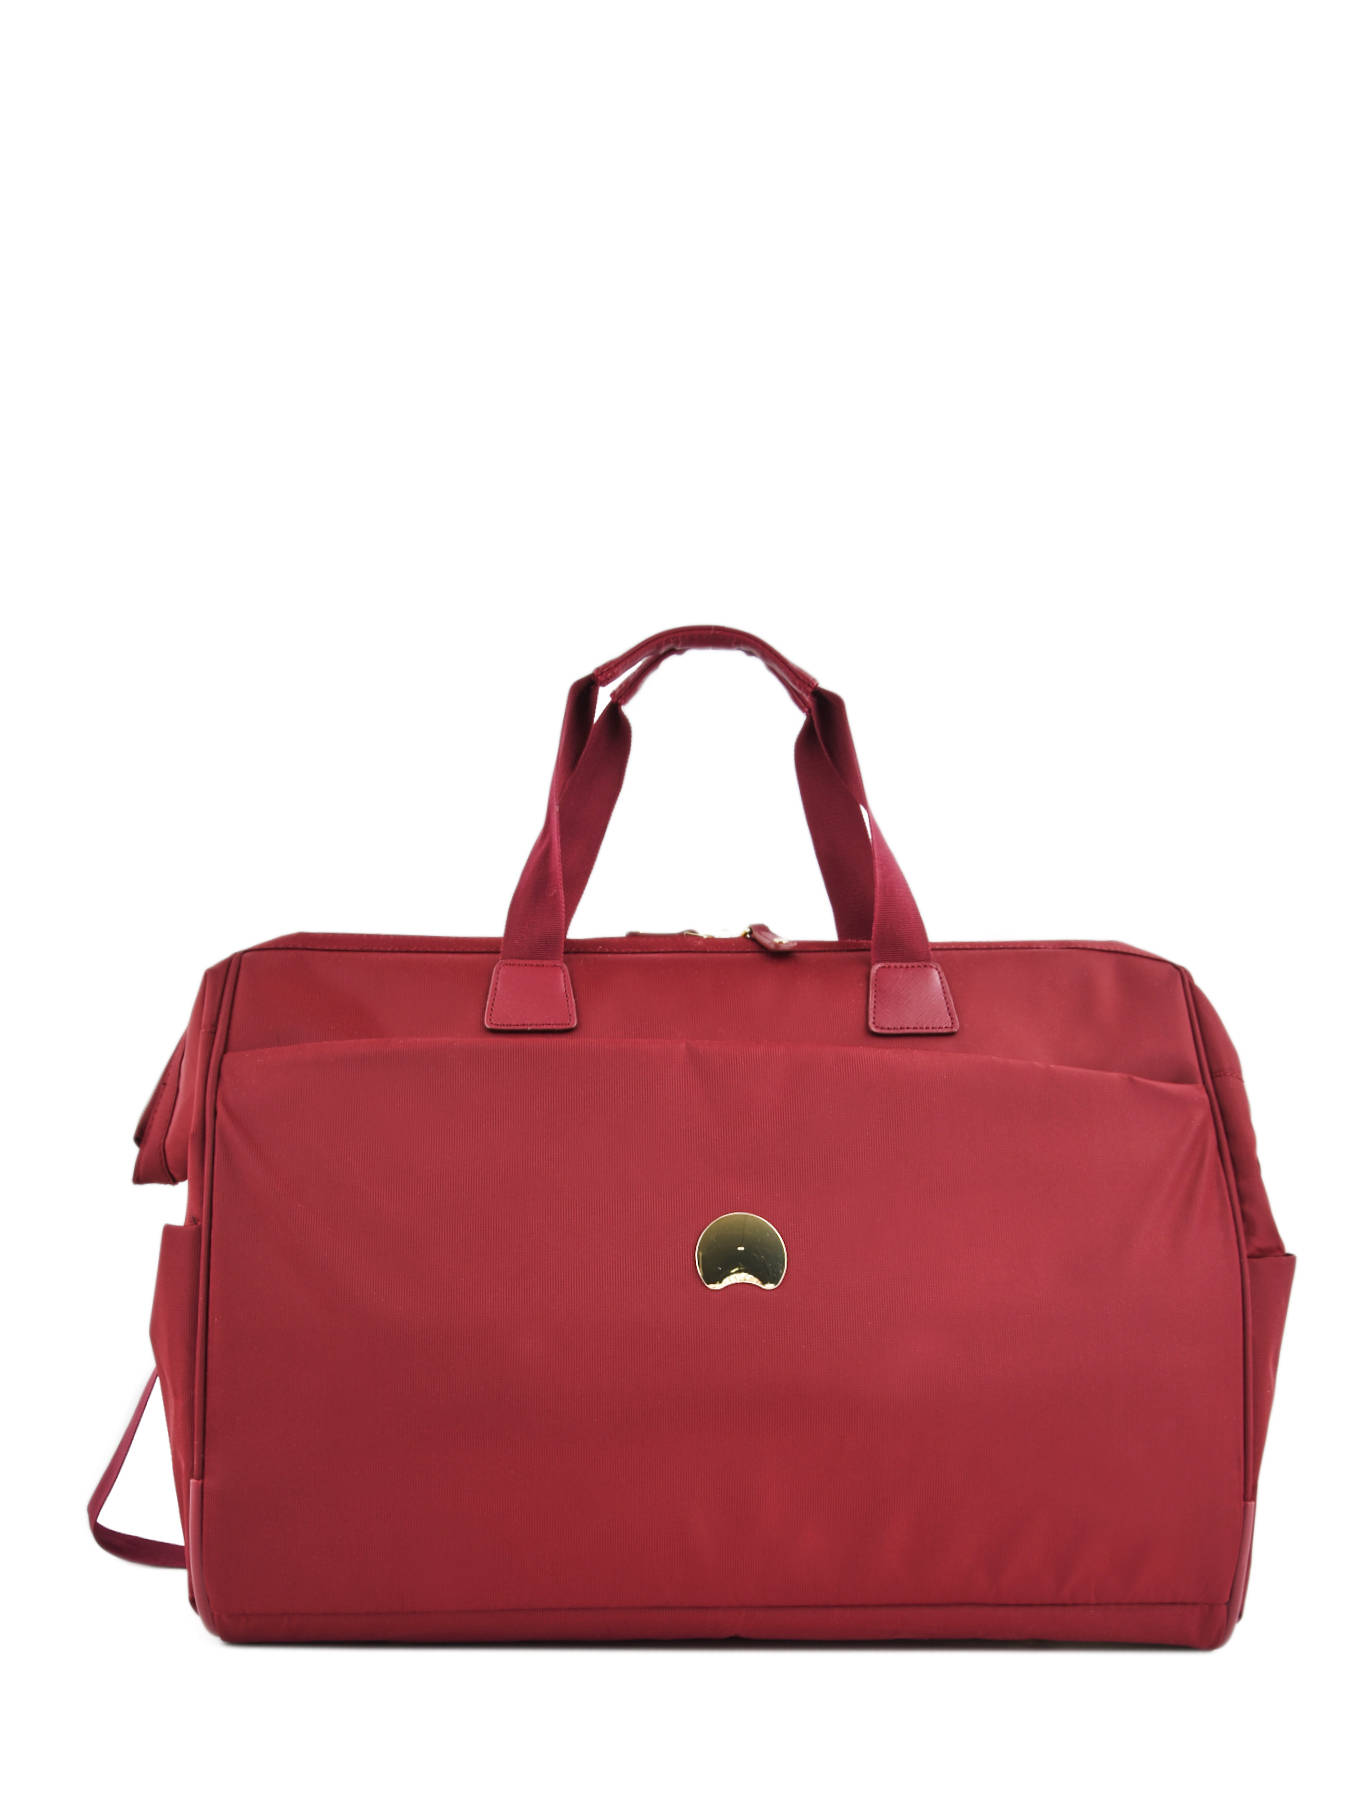 957a770b0d15 Delsey Carry on travel bag 2018.410 - free shipping available